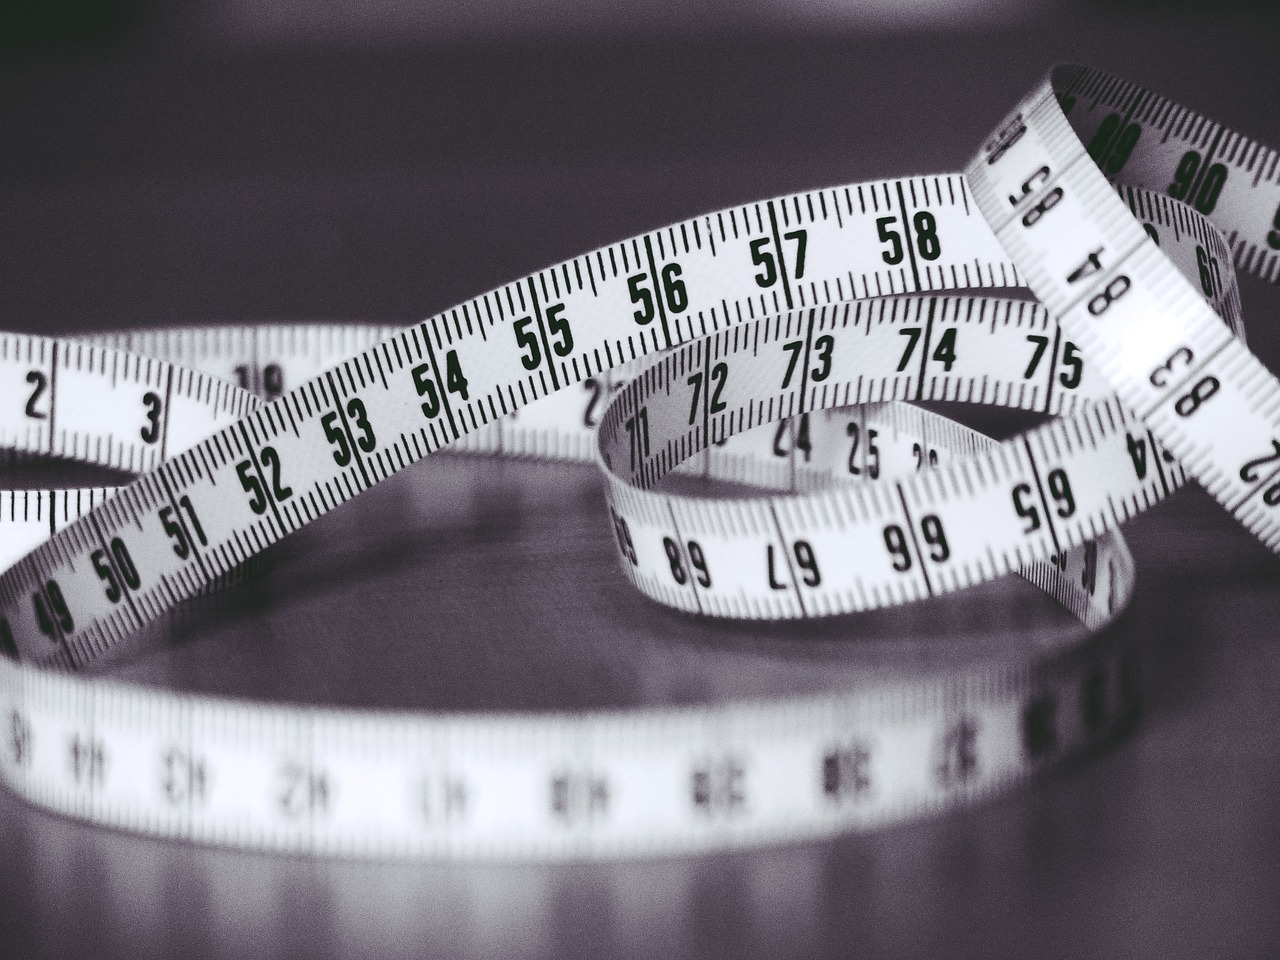 Measure, precision, length, tape measure, centimeters - free image from needpix.com